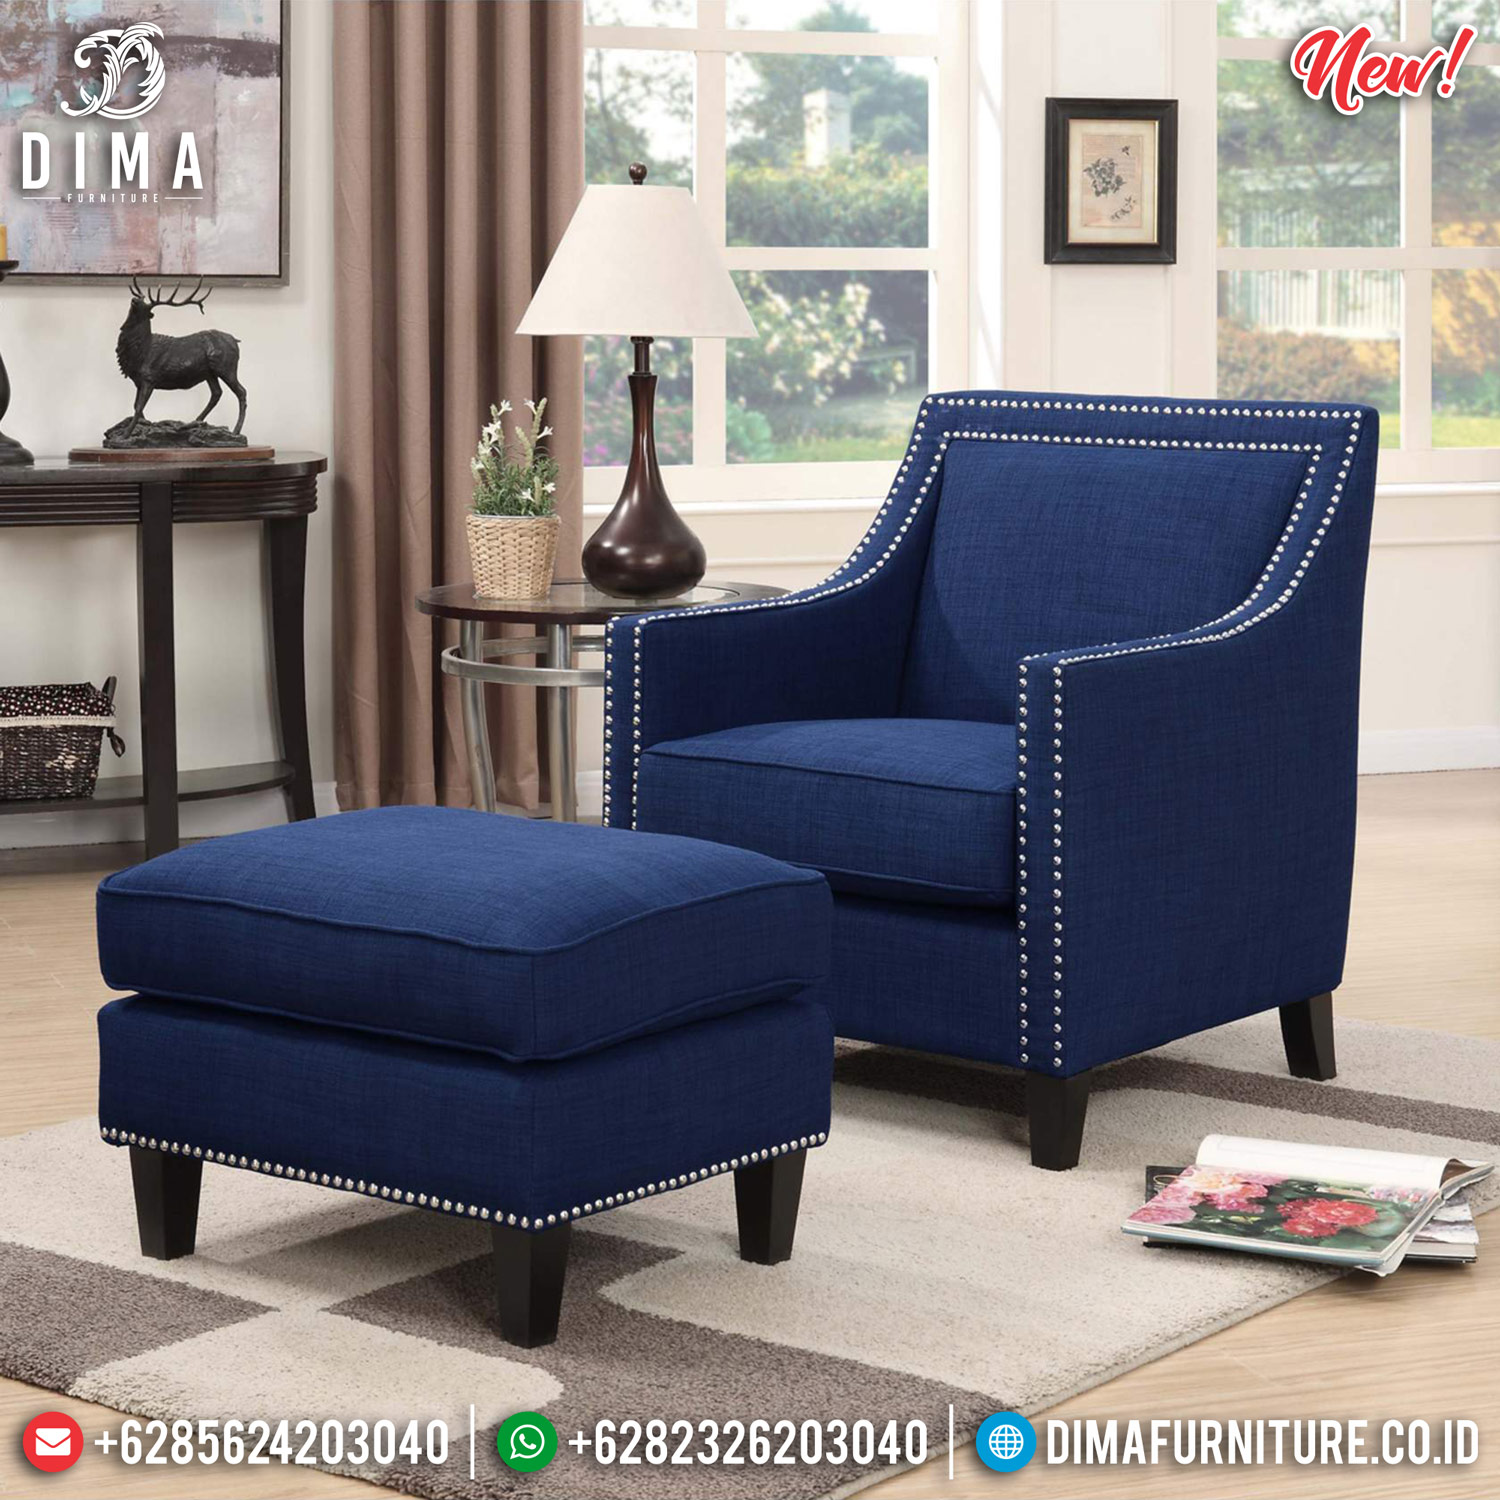 New Model Sofa Minimalist Softly Foam, Sofa Santai Minimalis Jepara MMJ-0817 Model 2